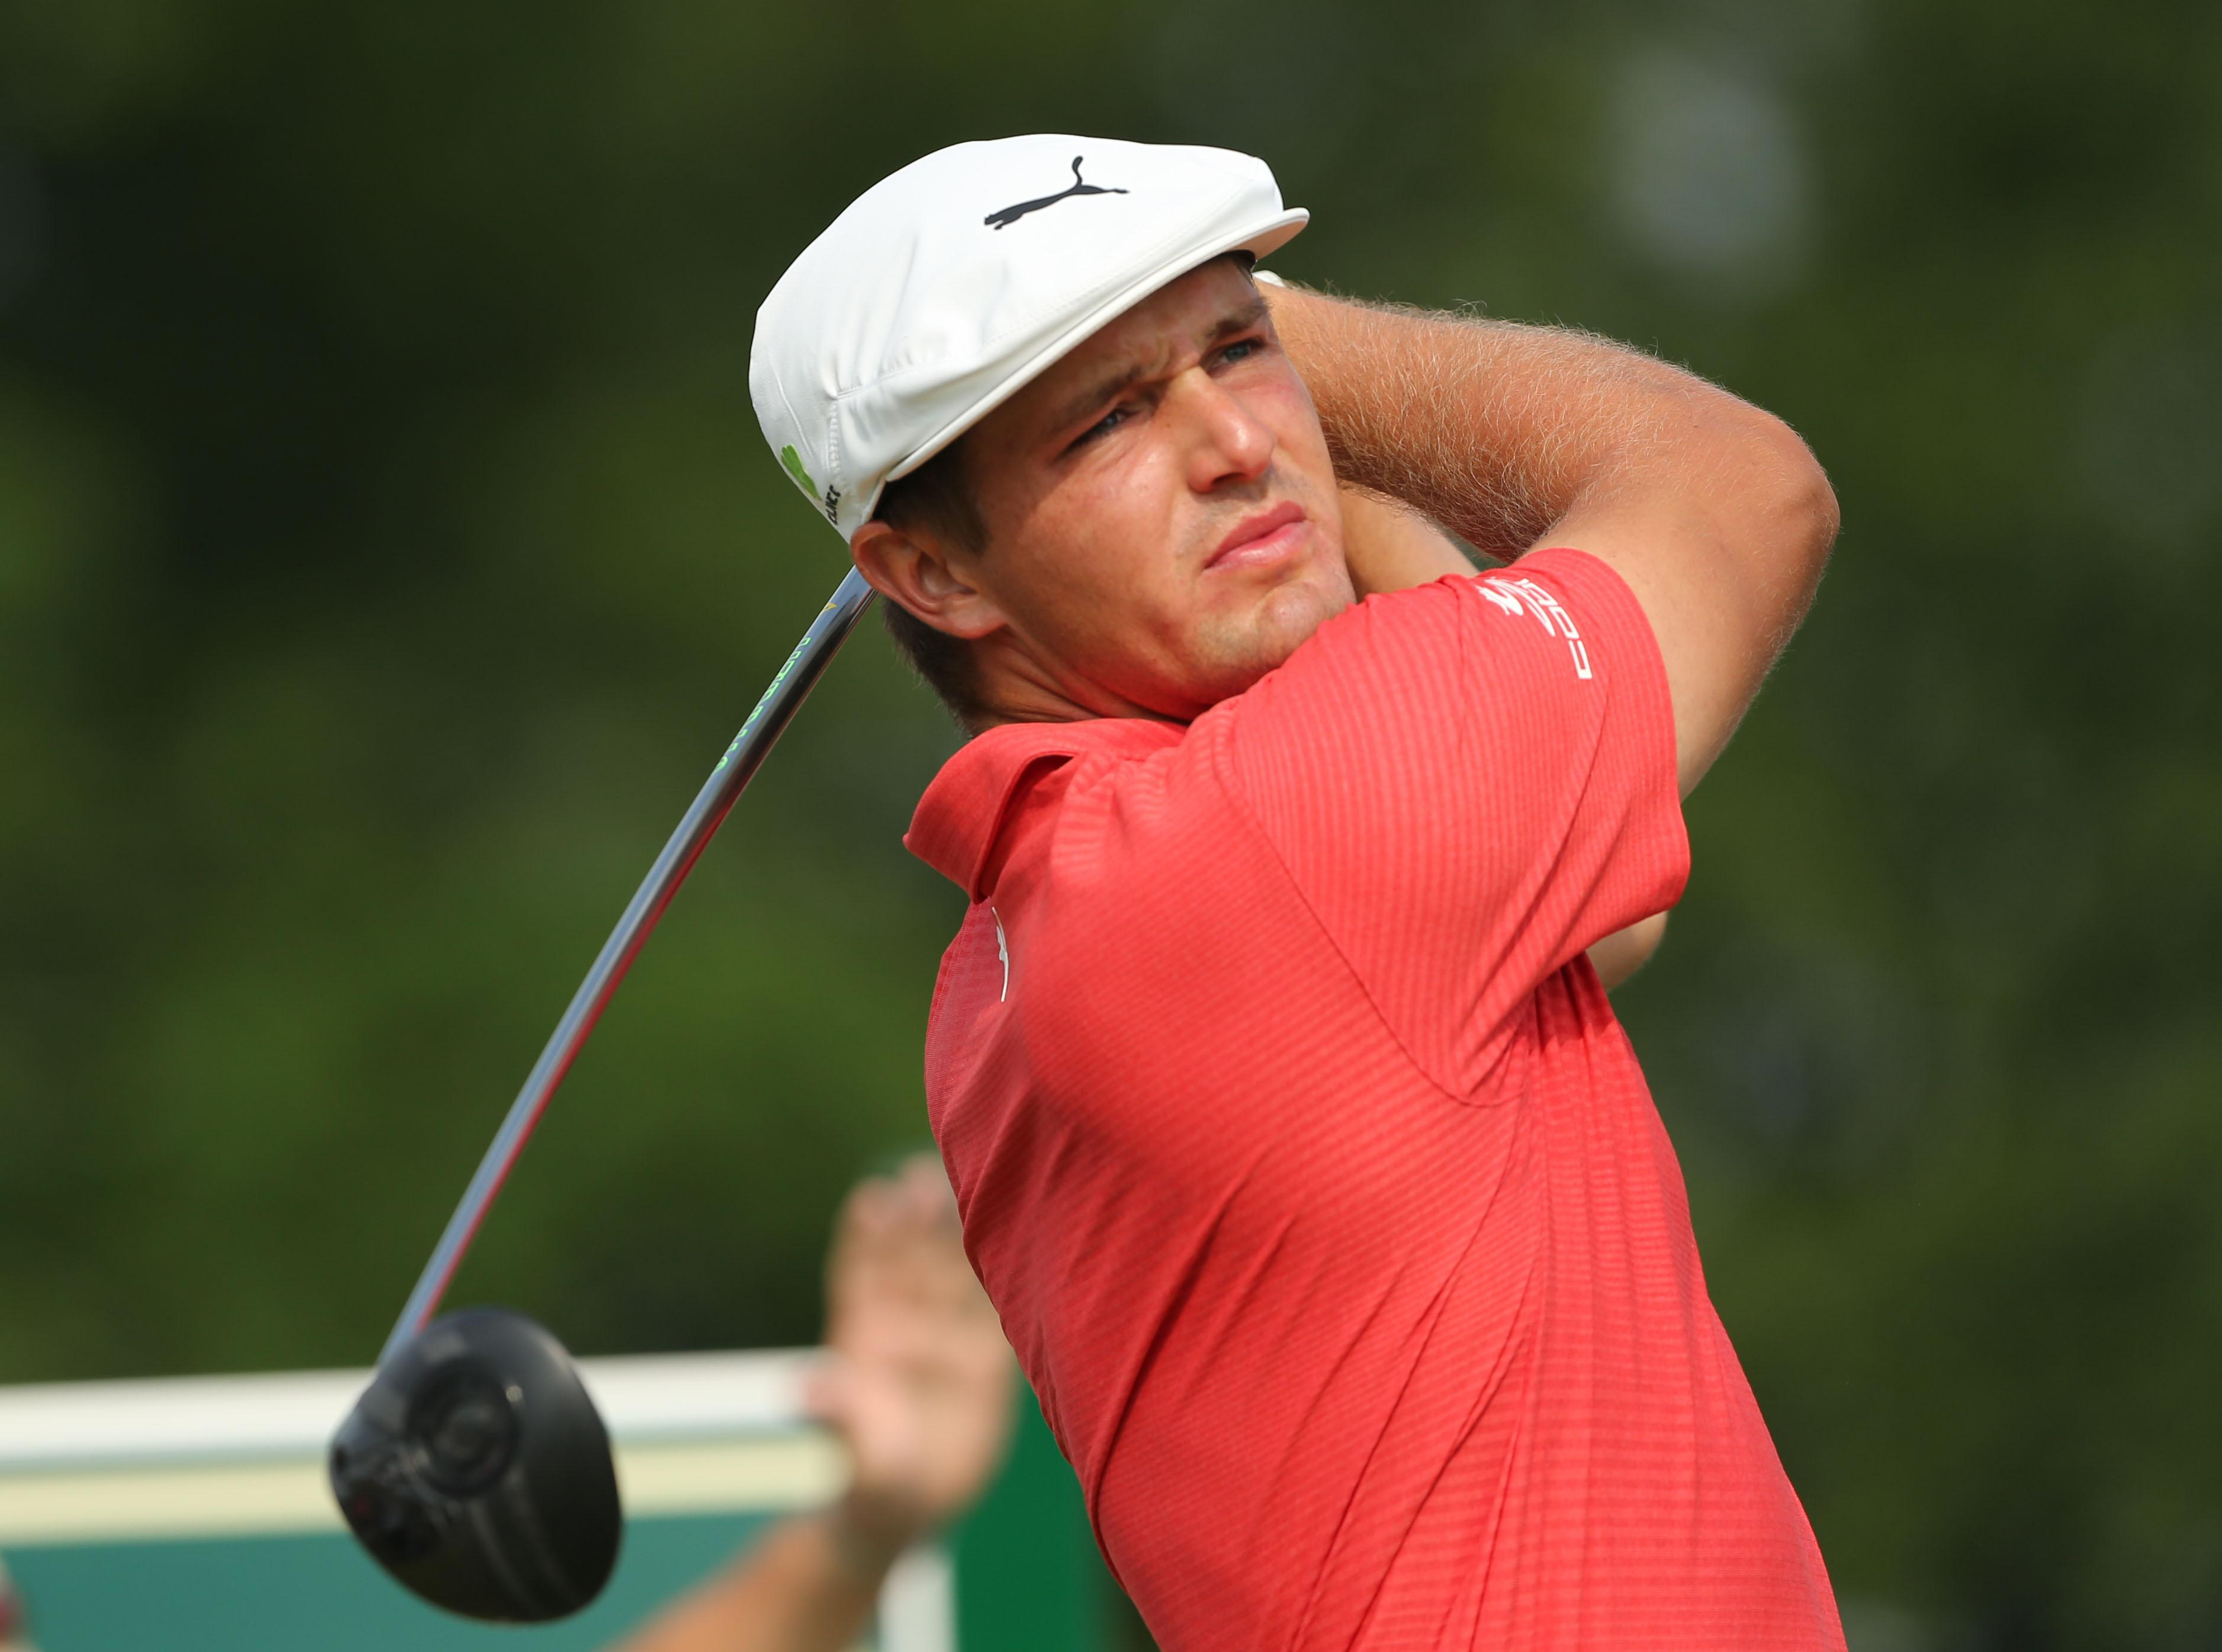 Bryson will be competing in his first Ryder Cup